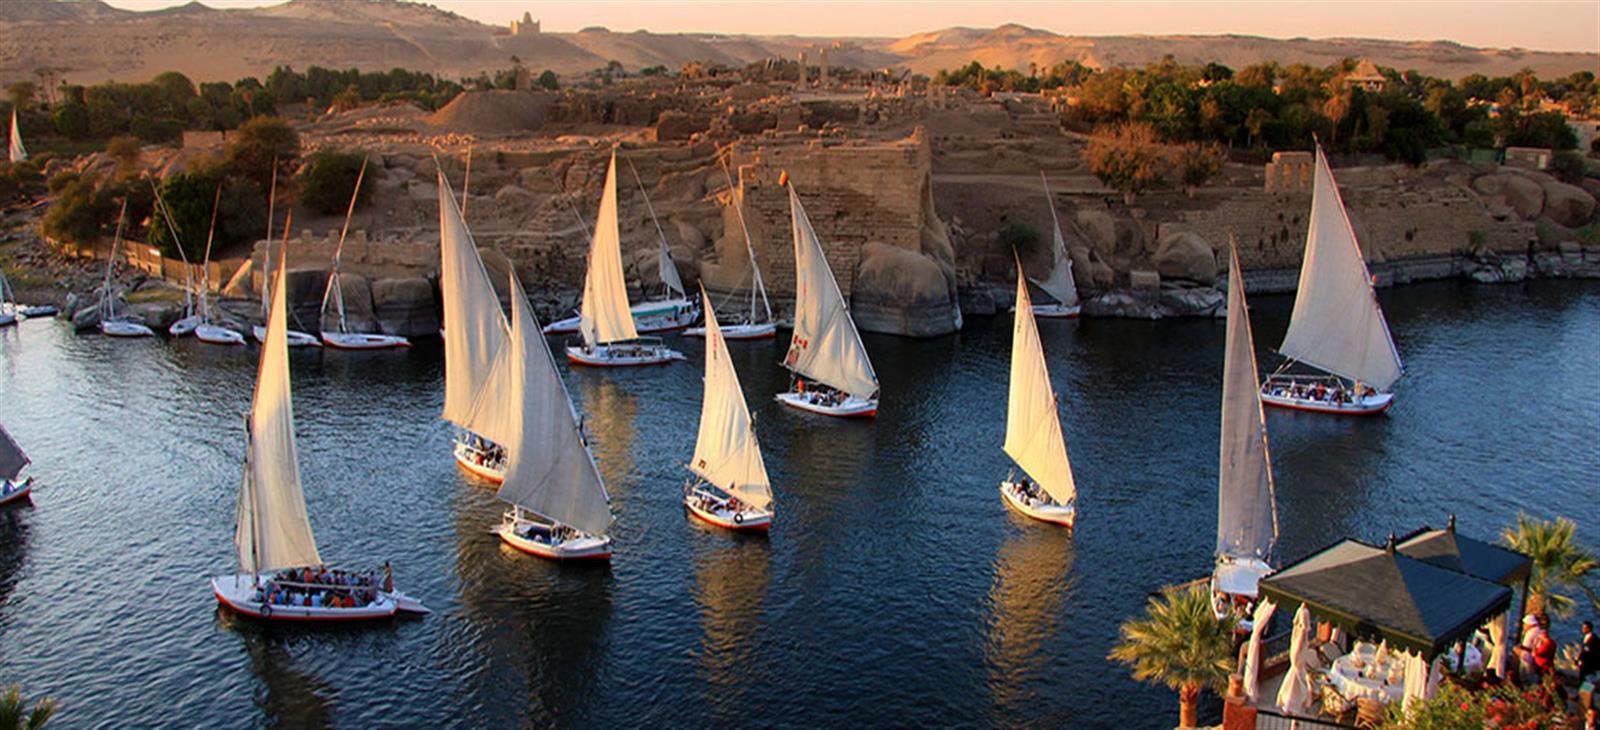 8 days cairo and nile cruise